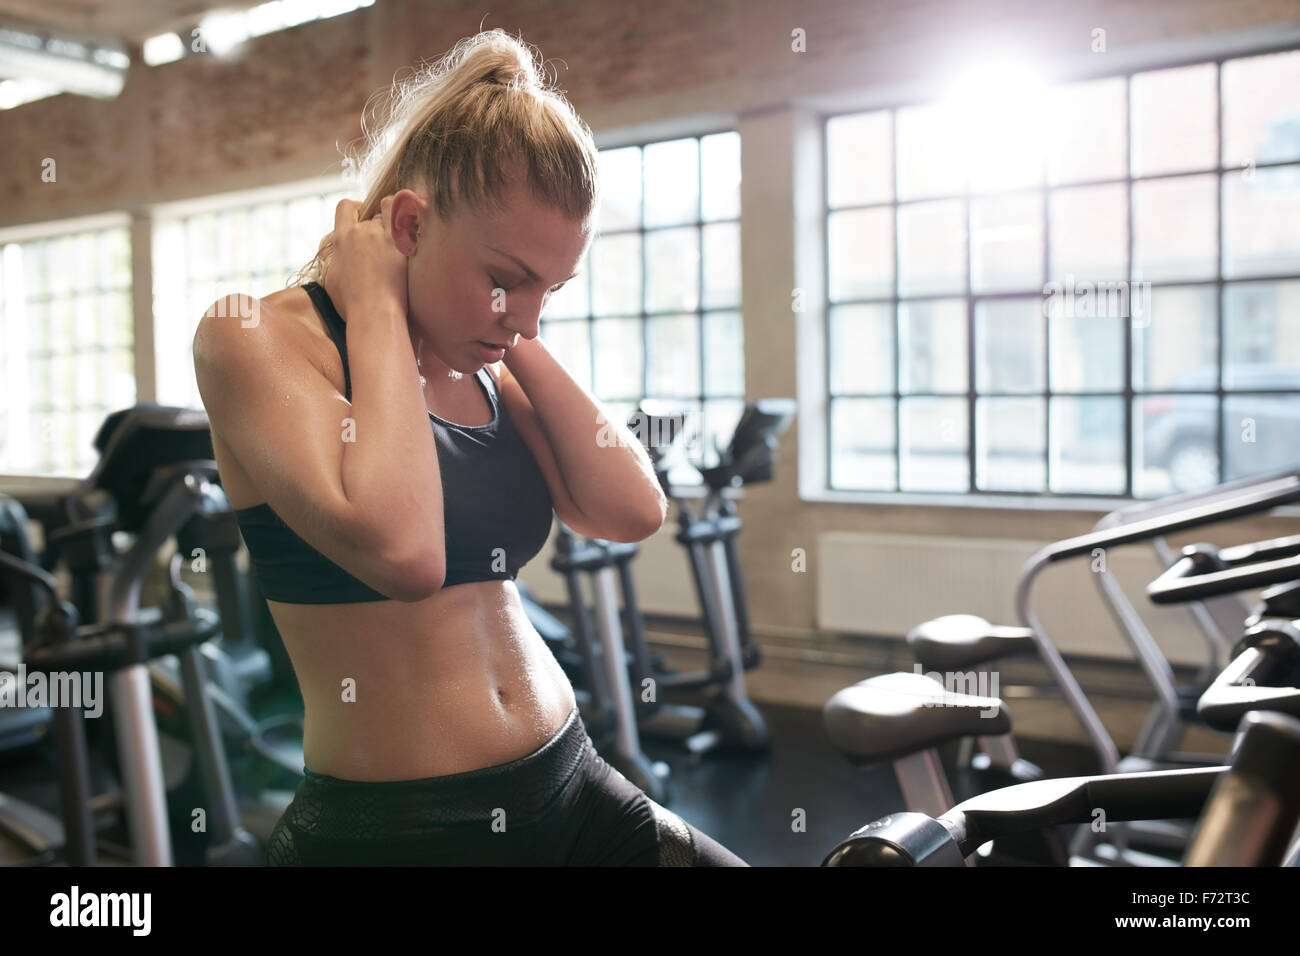 Indoor shot of young woman feeling tired after working out on stationary bikes in gym. Relaxing her neck muscles. Stock Photo